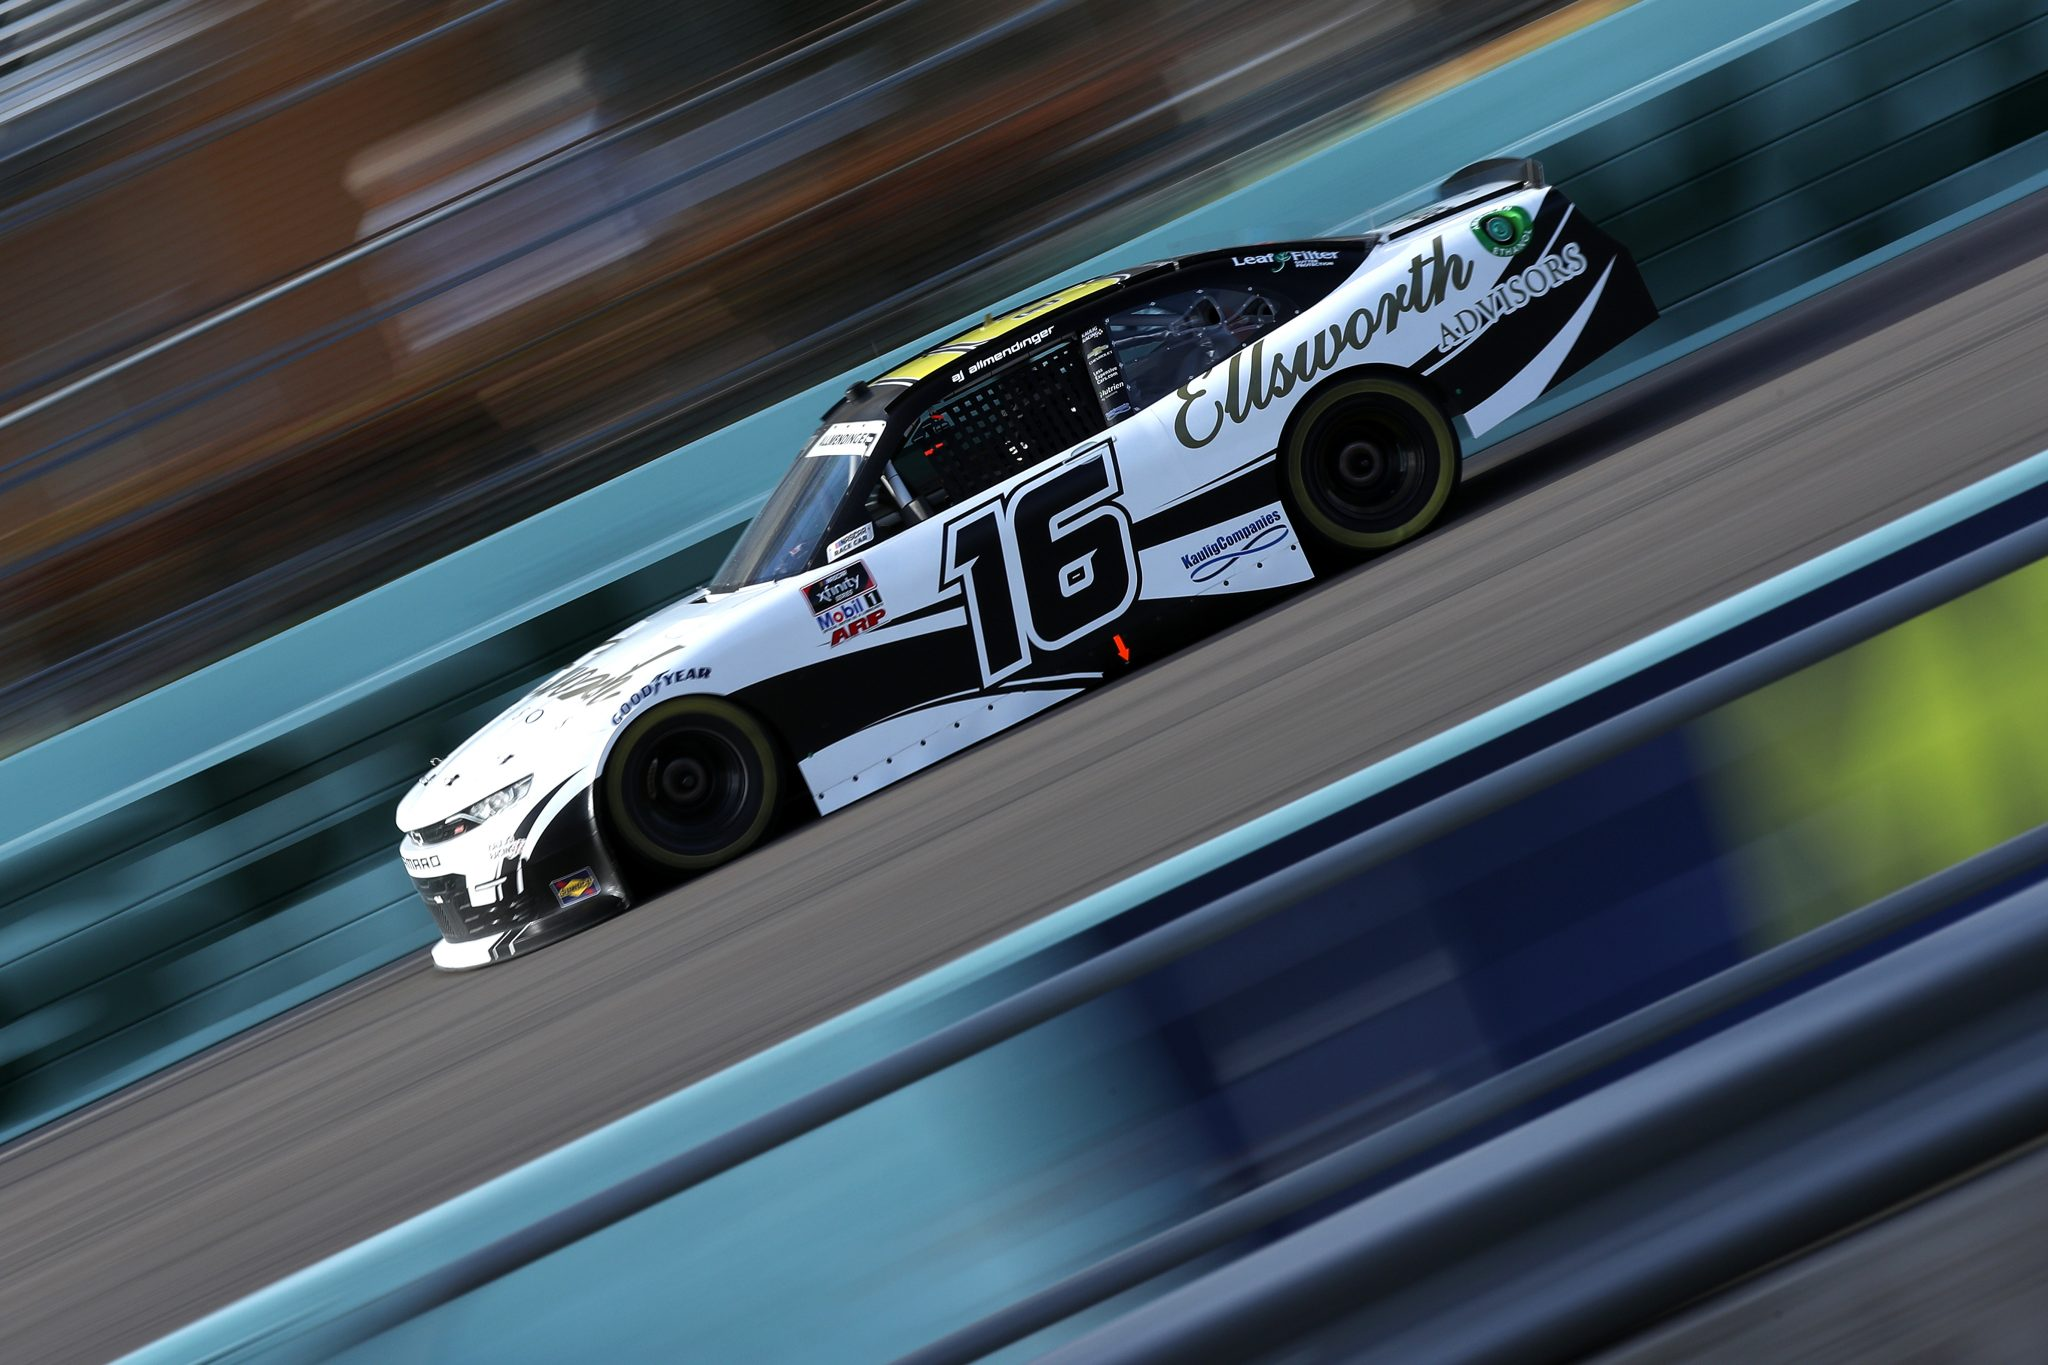 HOMESTEAD, FLORIDA - FEBRUARY 27: AJ Allmendinger, driver of the #16 Ellsworth Advisors Chevrolet, drives during the NASCAR Xfinity Series Contender Boats 250 at Homestead-Miami Speedway on February 27, 2021 in Homestead, Florida. (Photo by Sean Gardner/Getty Images) | Getty Images